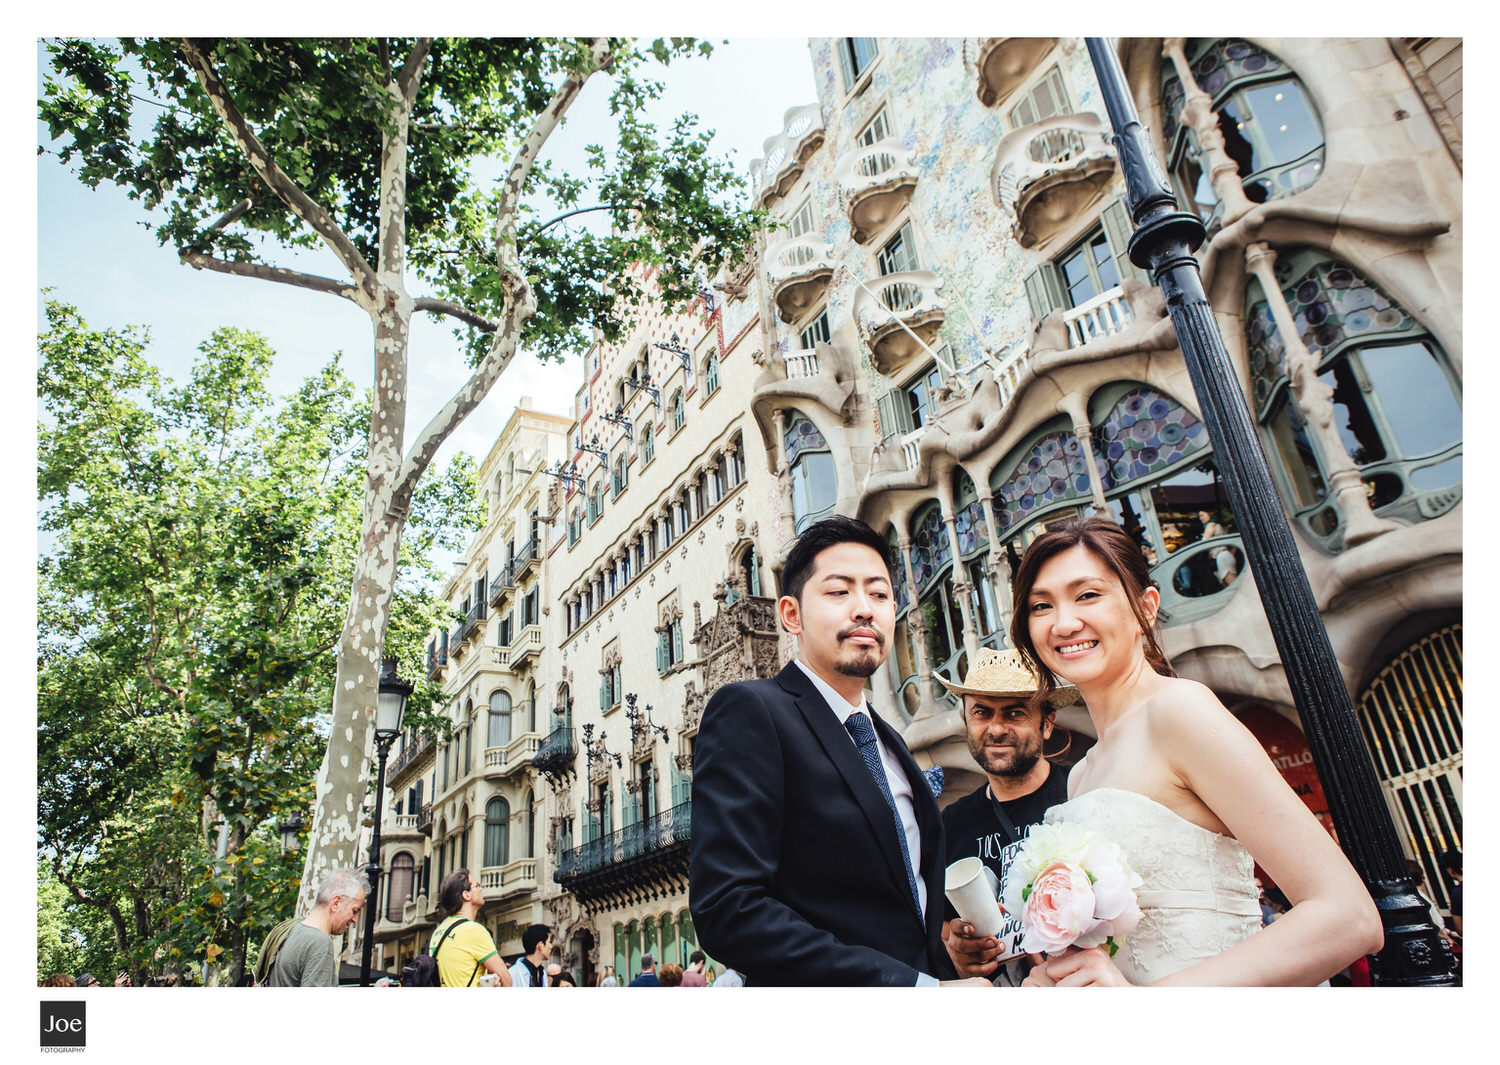 joe-fotography-31-barcelona-la-pedrera-pre-wedding-liwei.jpg